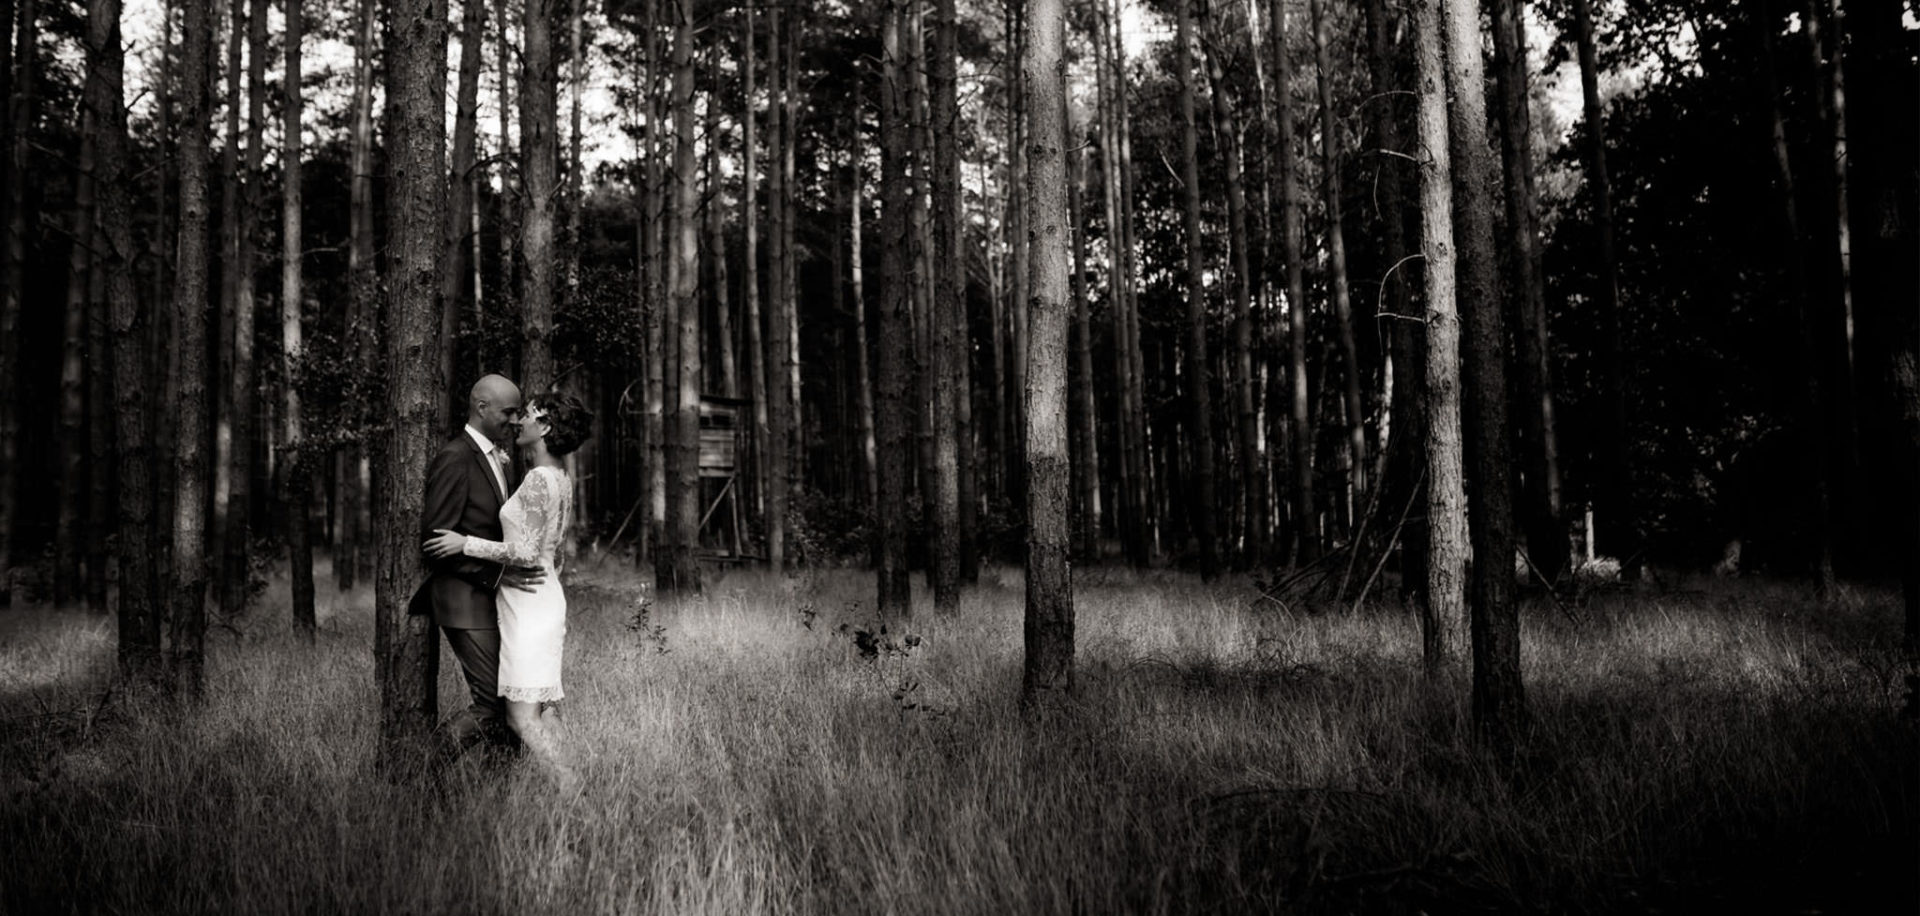 fusion wedding video-weddingfilm-wedding photographer offering video-elopement europe